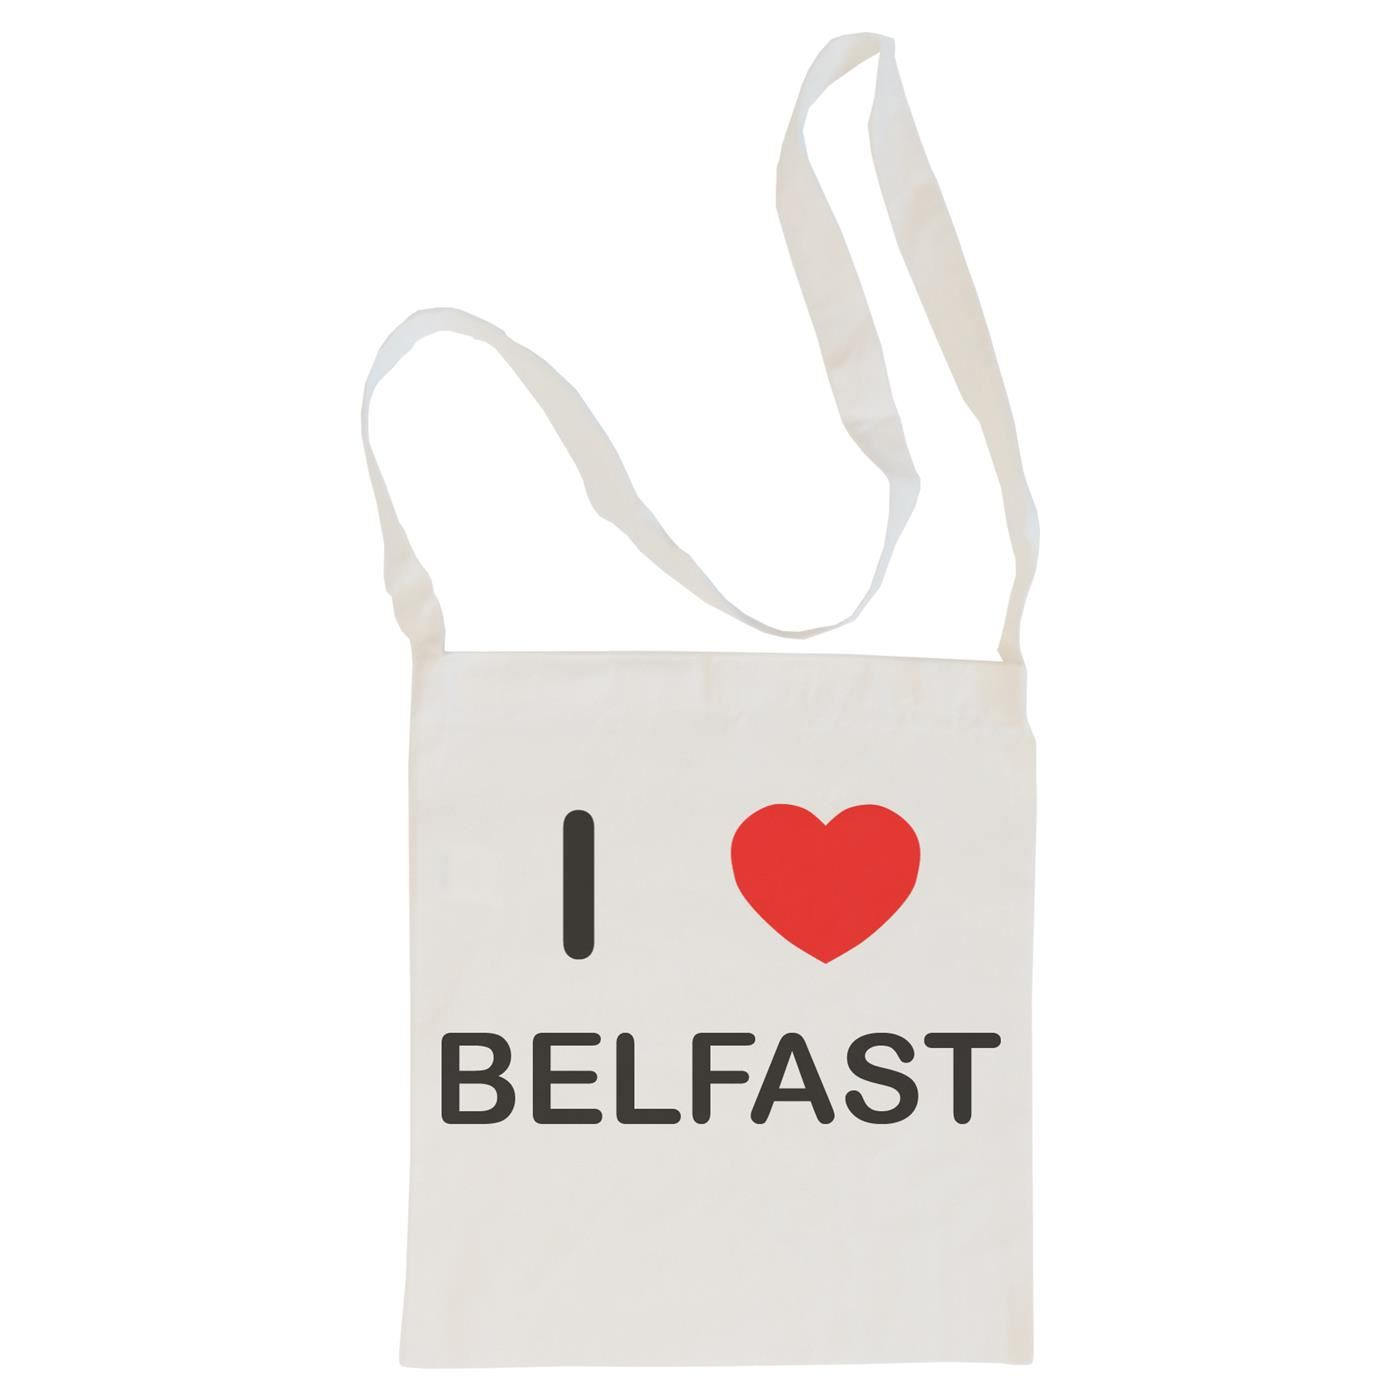 I Love Belfast - Cotton Bag | Size choice Tote, Shopper or Sling